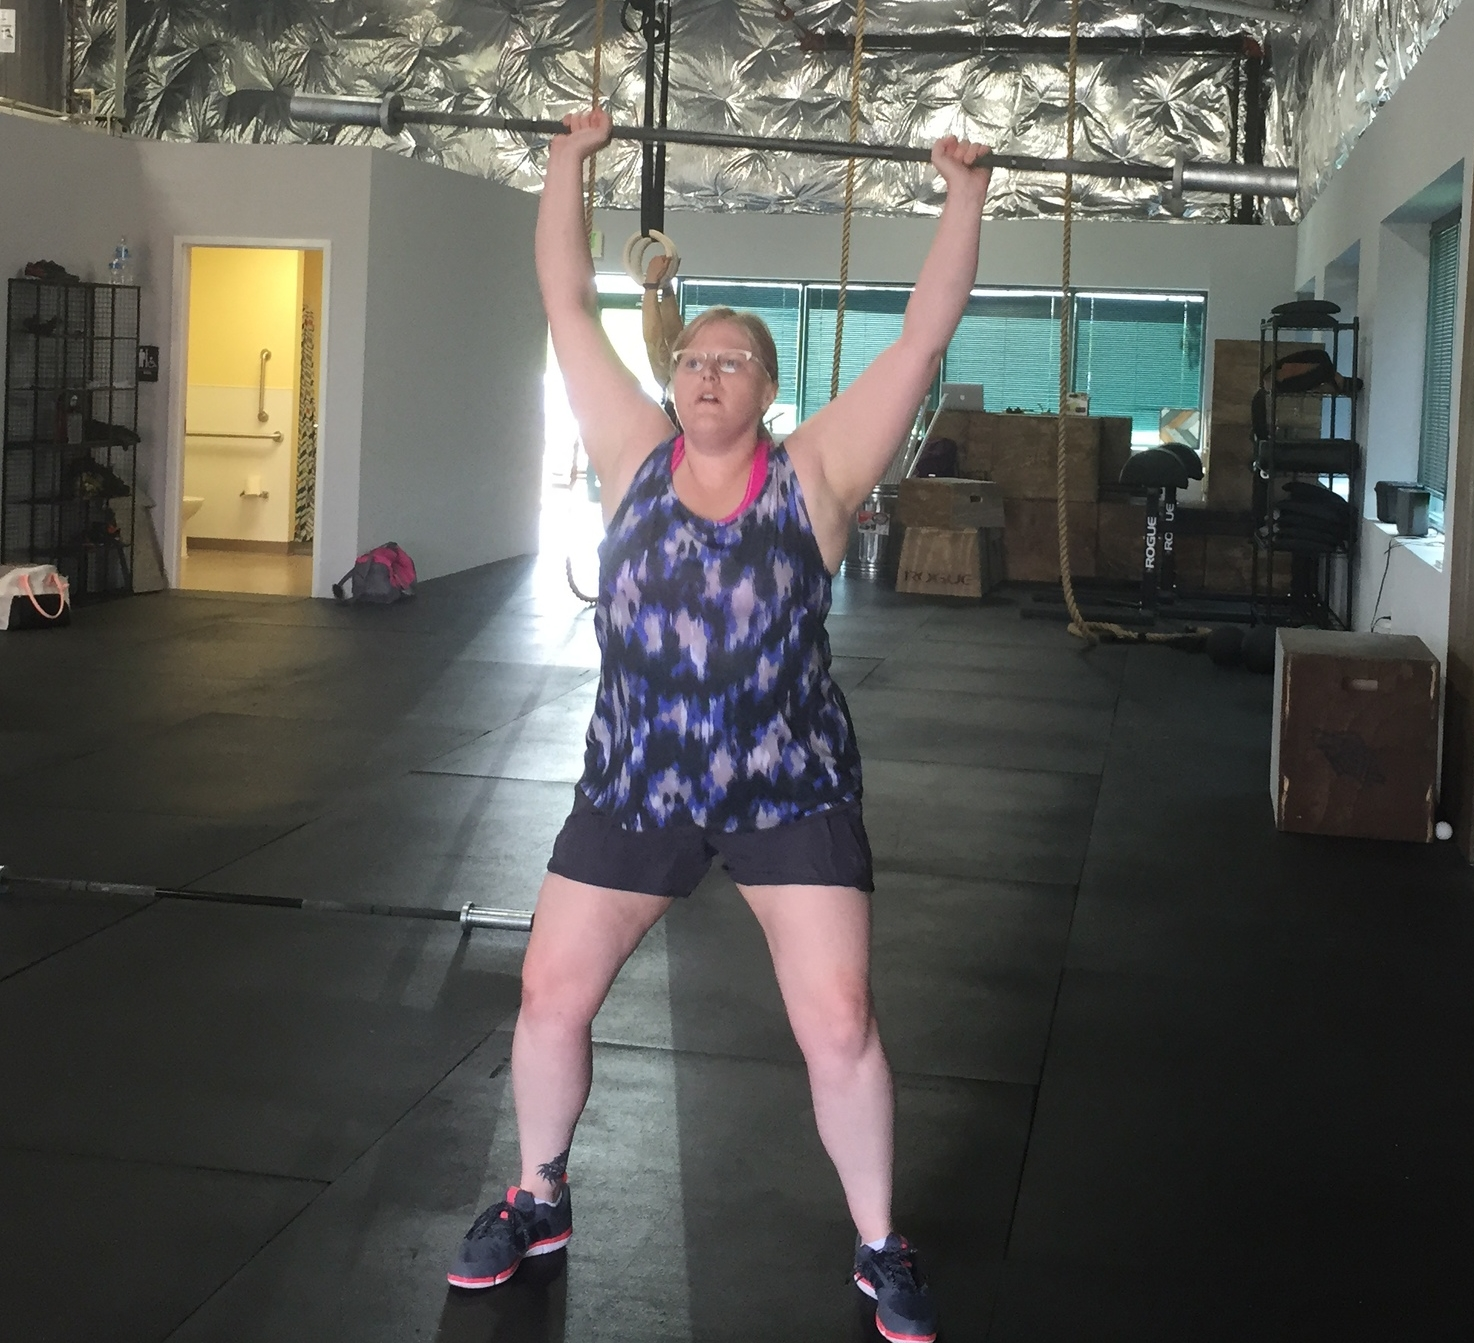 Jen is working hard to learn all of the movements. She enthusiastically graduated from the Roots program and jumped right into regular class where she will continue to grow as an athlete!